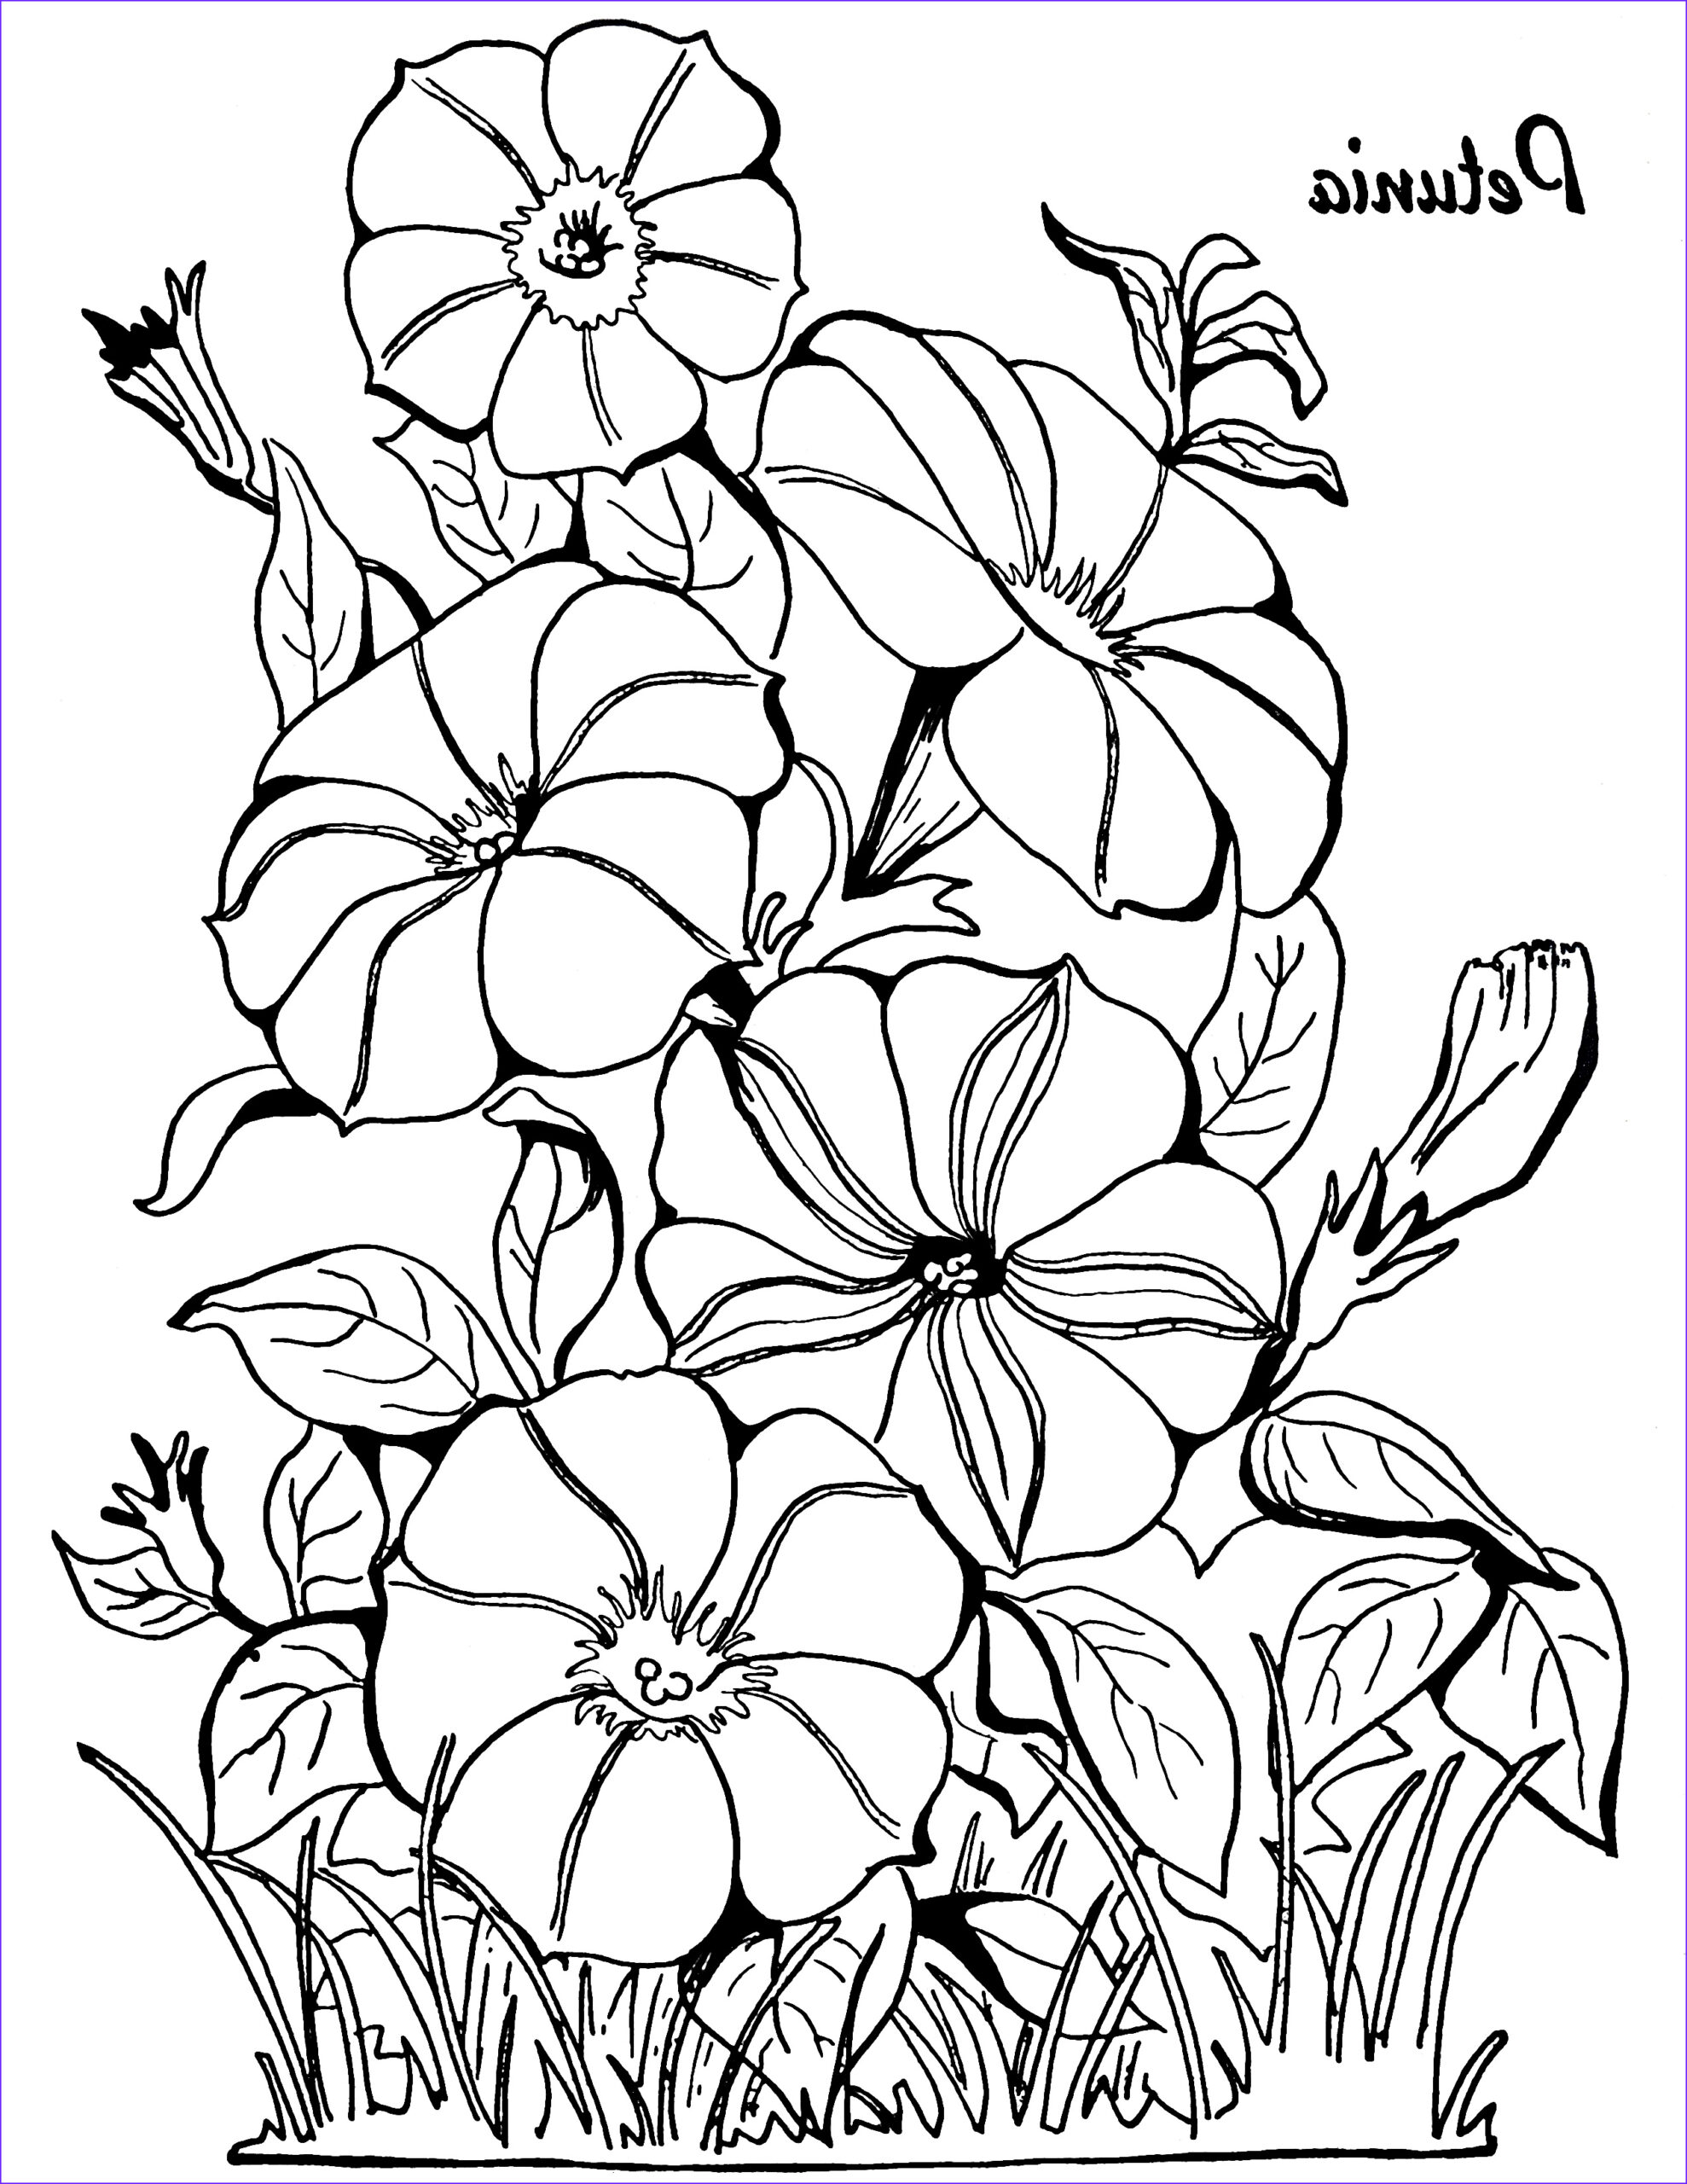 Coloring Book Adults Inspirational Photos Adult Coloring Page Petunias the Graphics Fairy